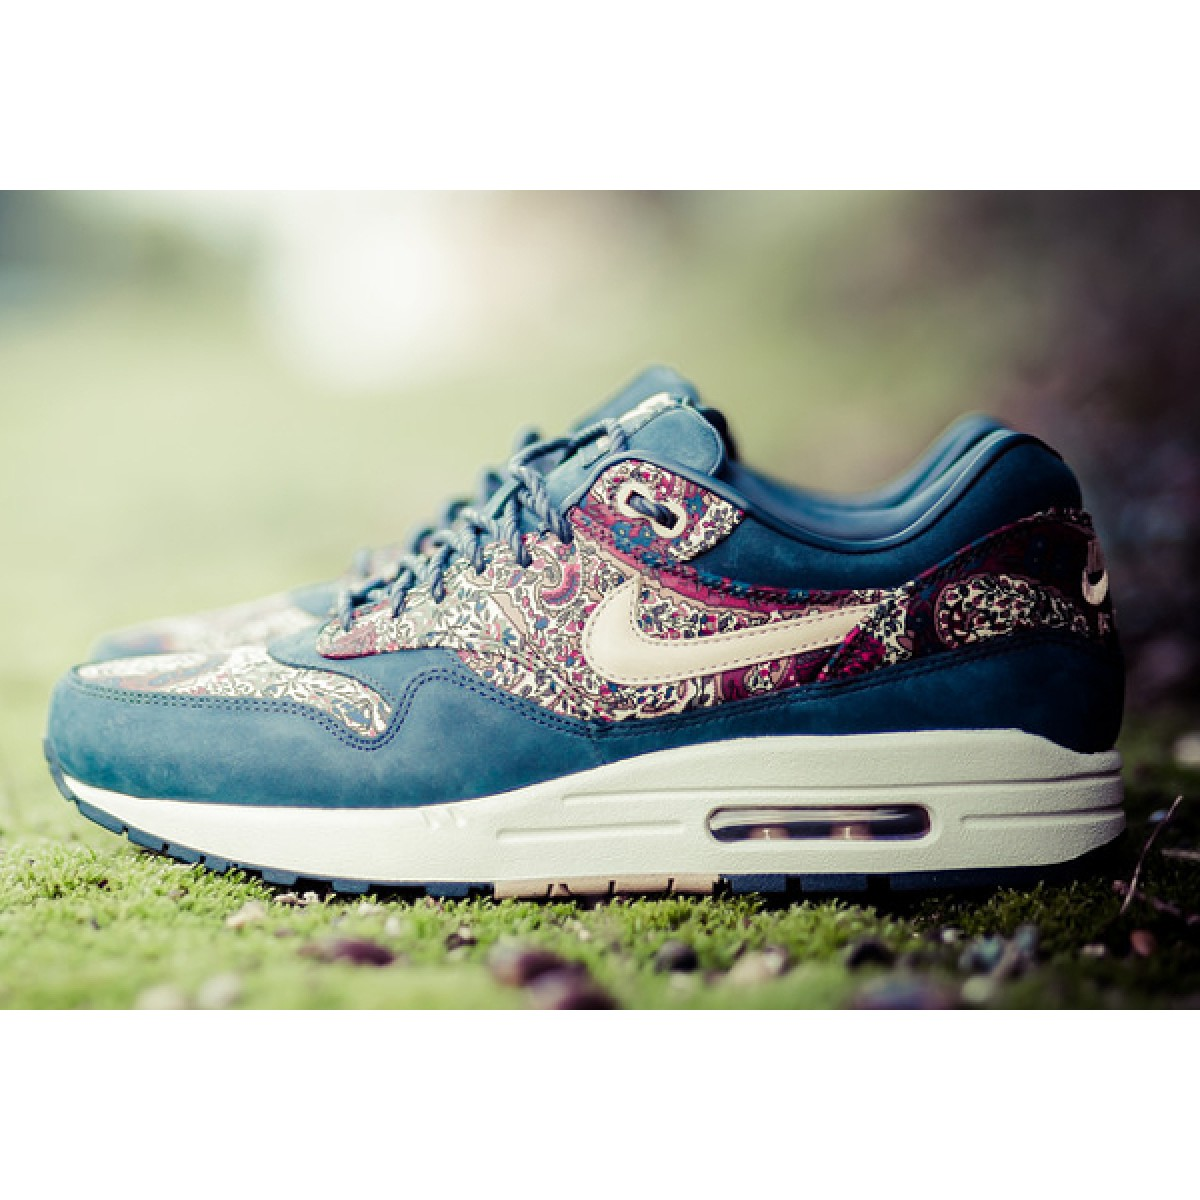 official photos a2290 23bb5 Achat  Vente produits Nike Air Max 1 Femme Liberty,Nike Air Max 1 Femme